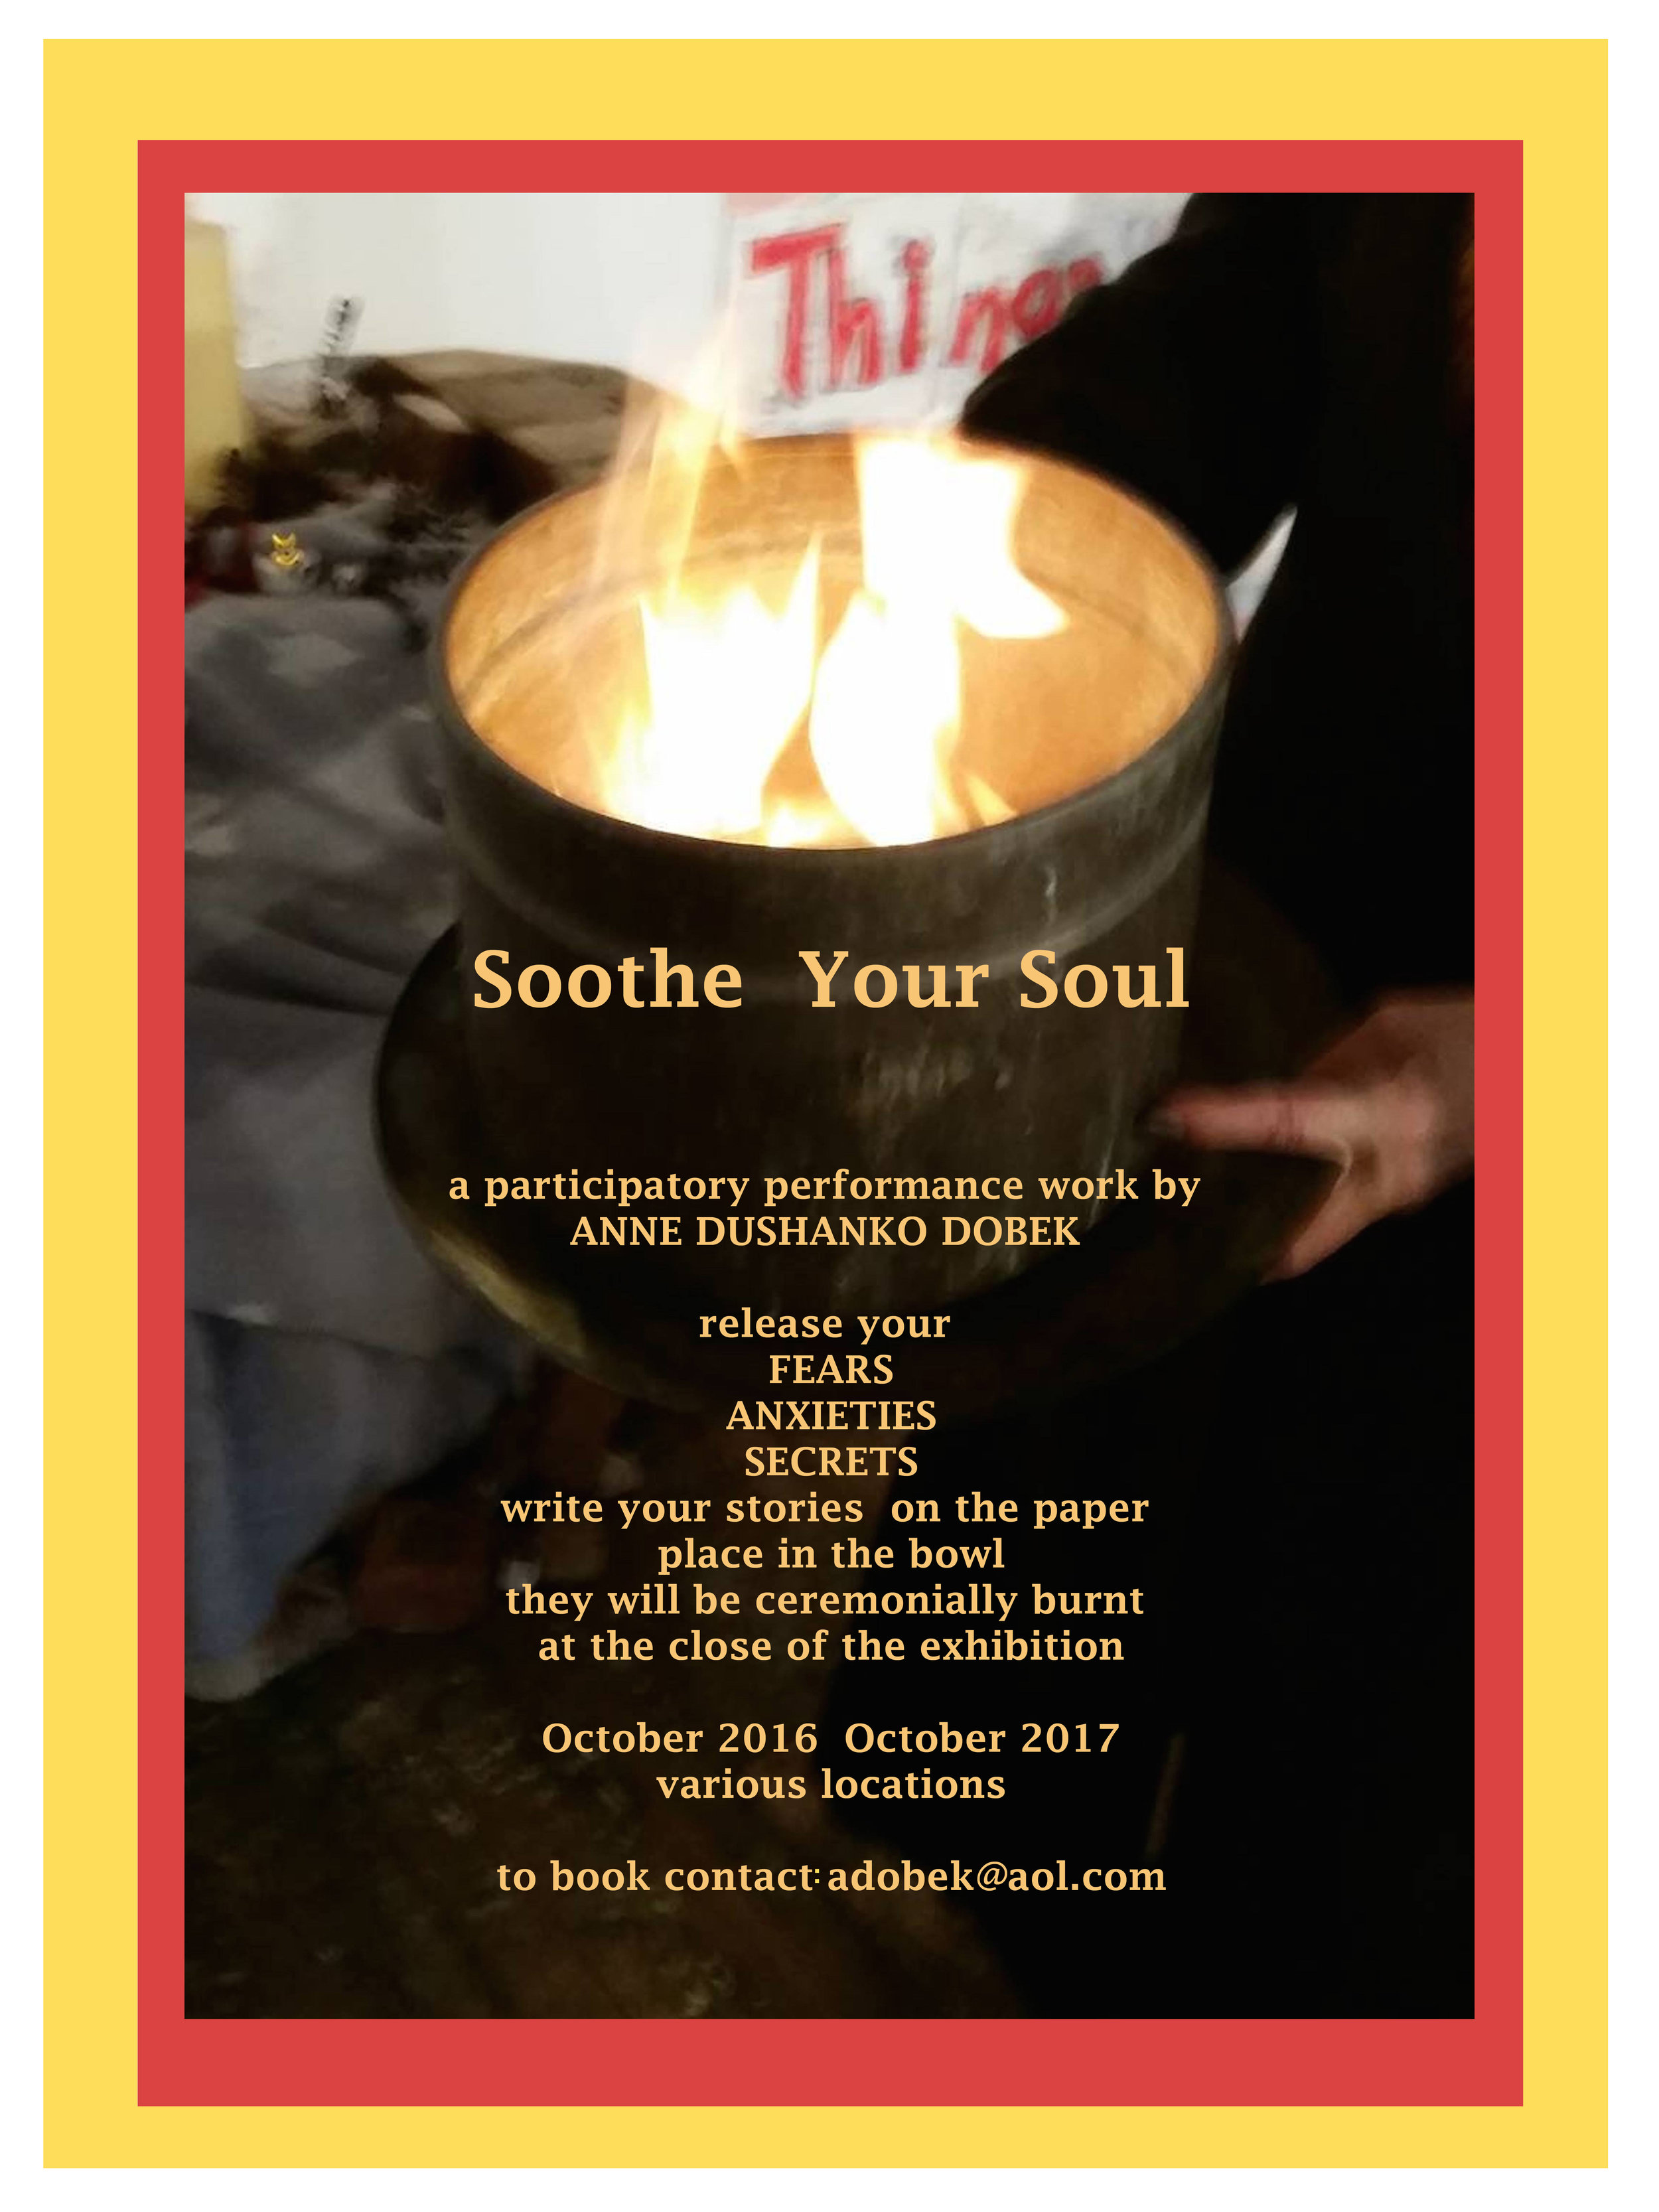 poster AA SootheYourSoul_BurningBowl_2017 copy copy.jpg